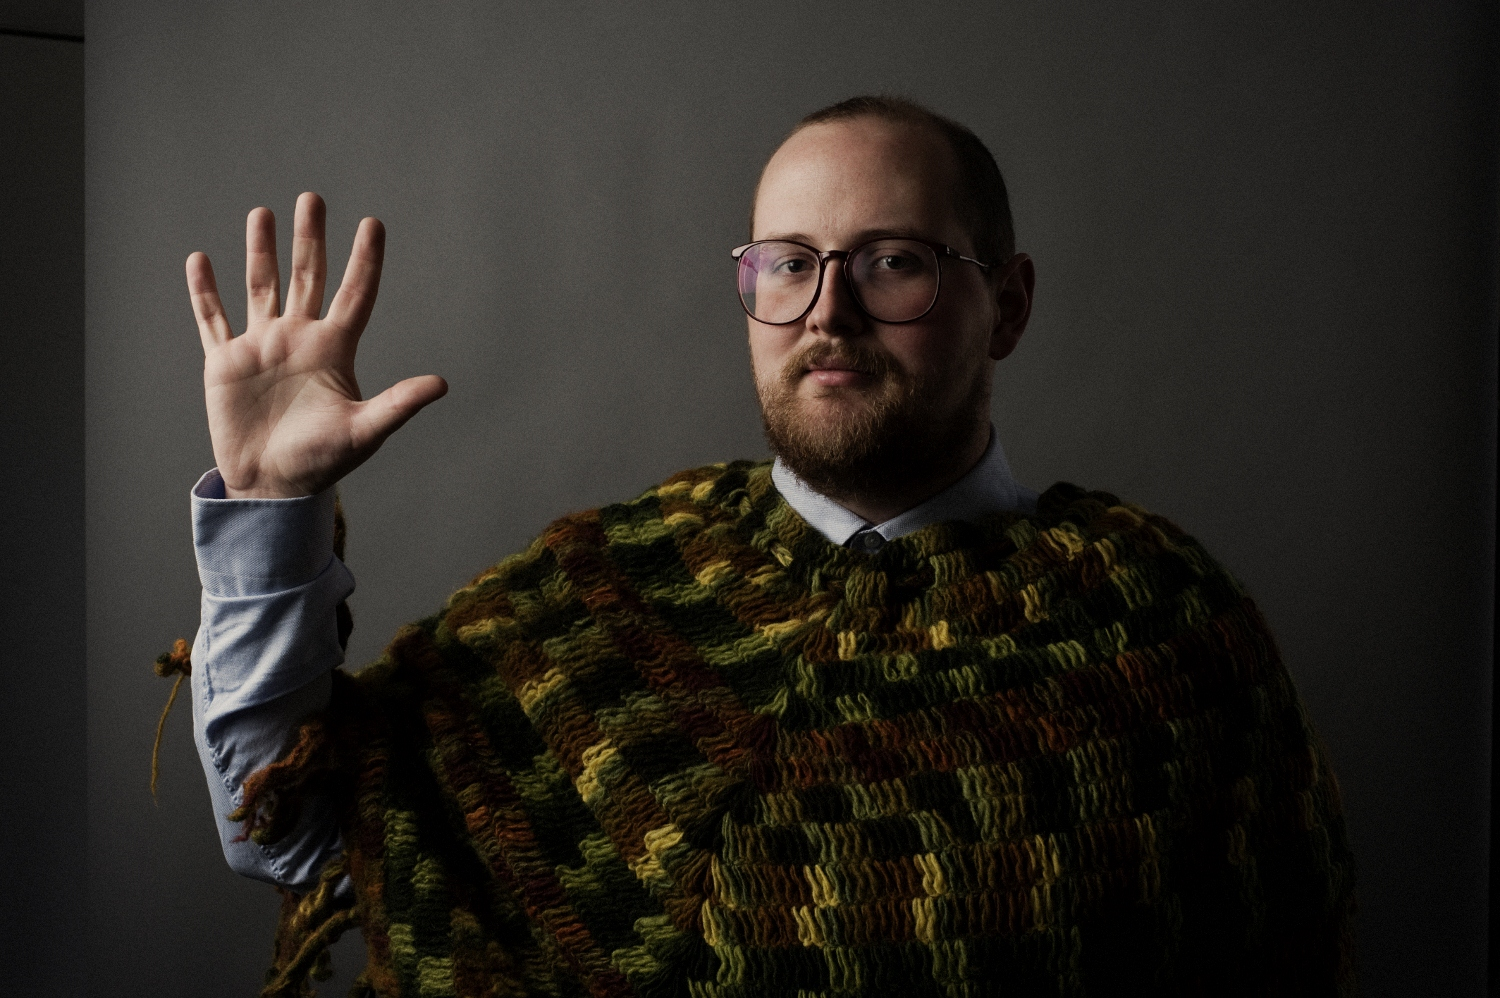 Dan Deacon. Photo: Shawn Brackbill